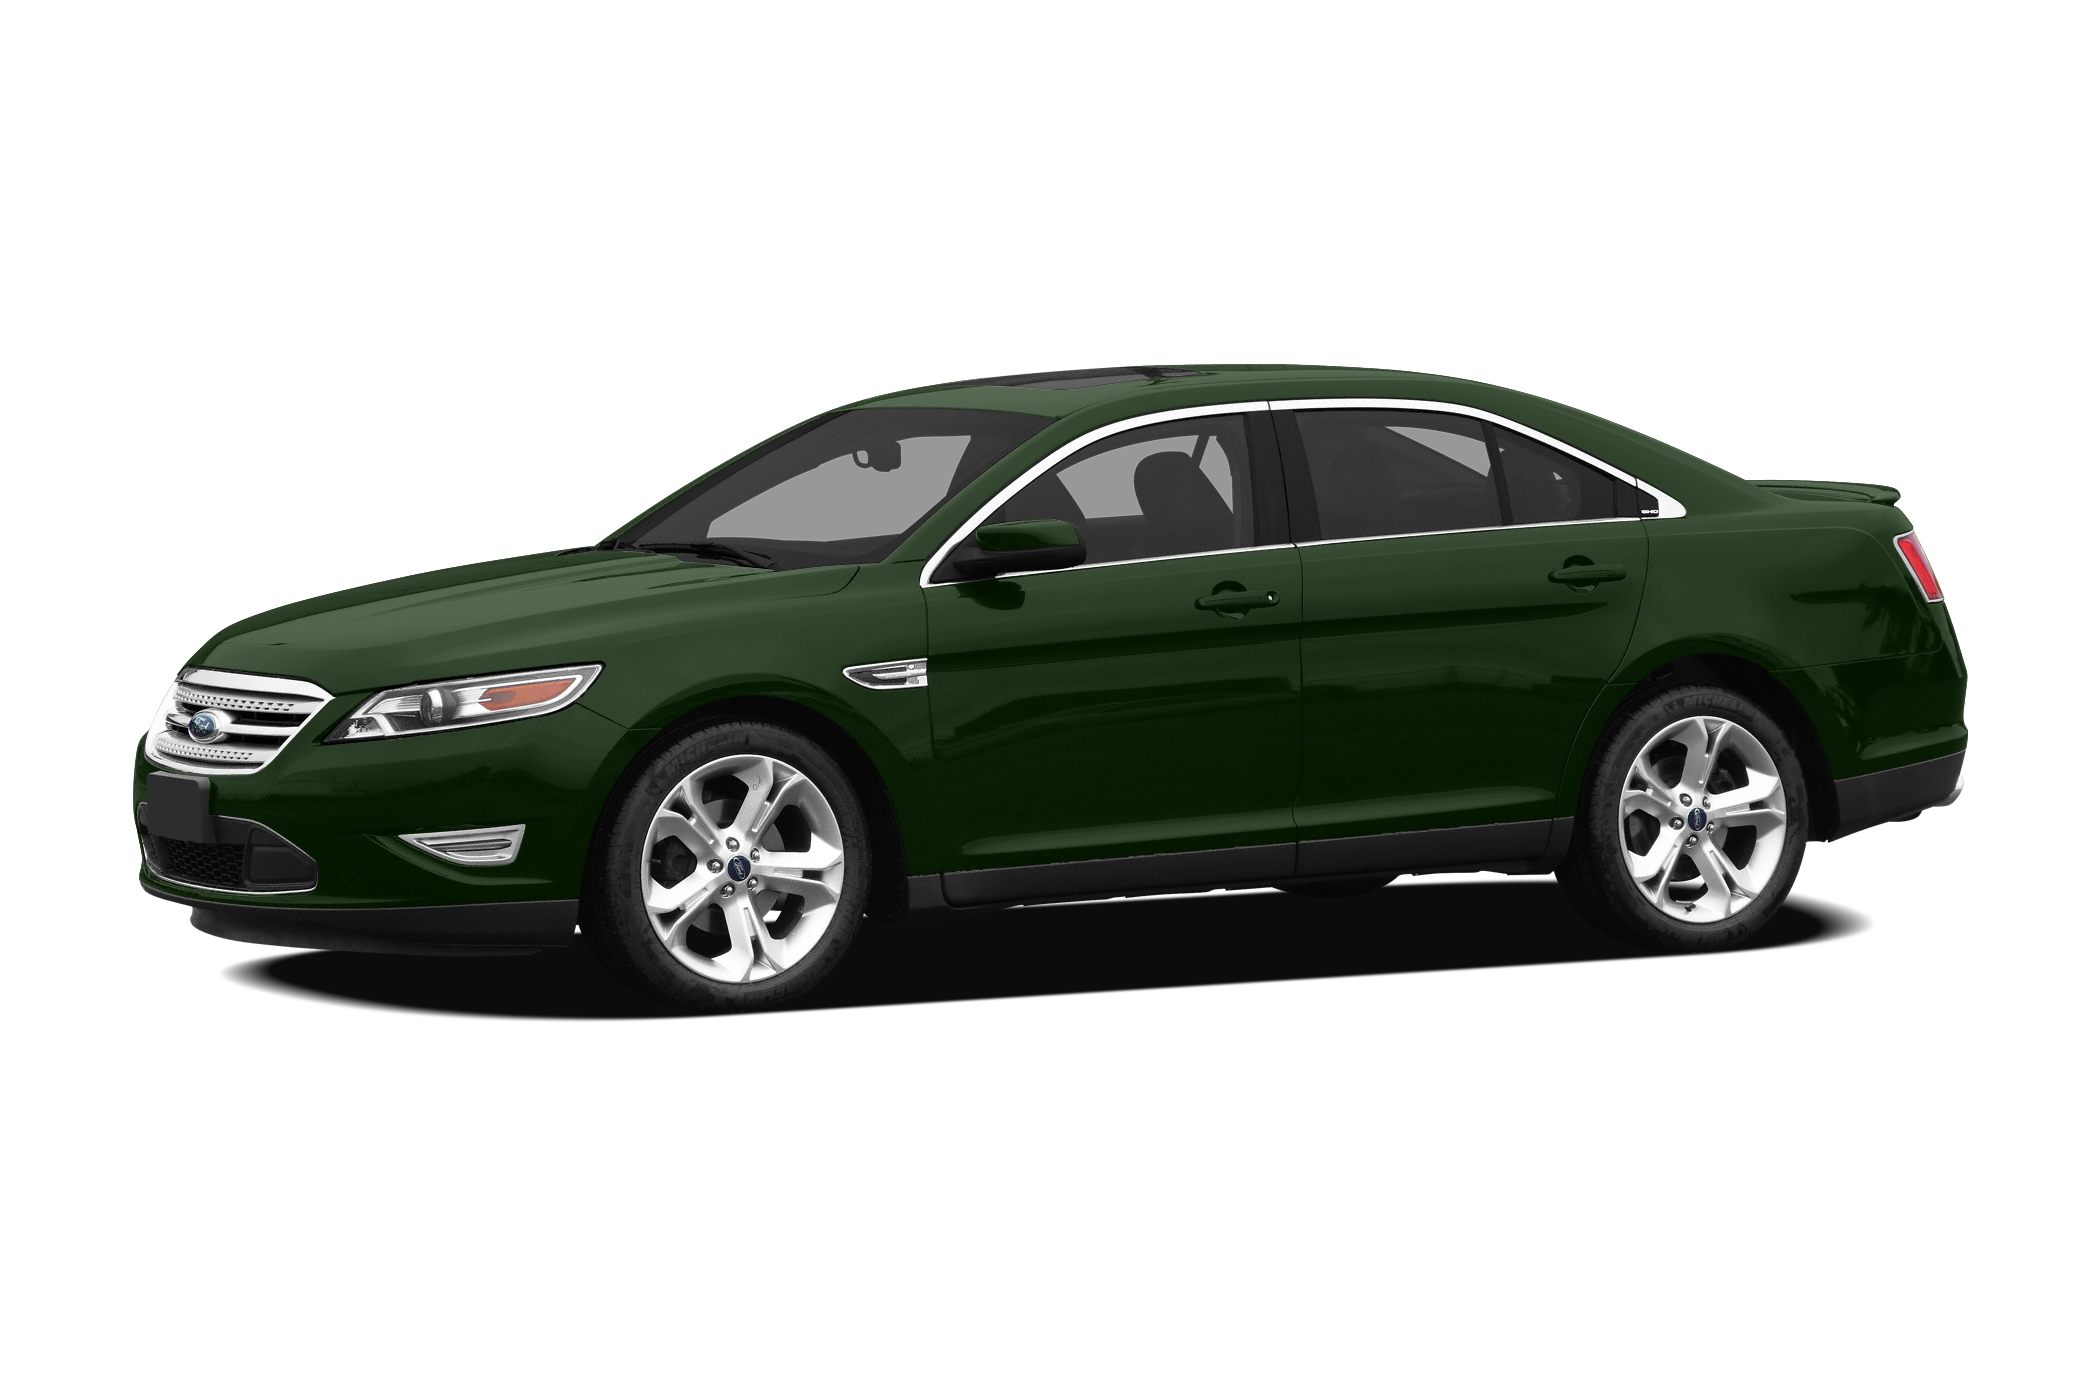 2010 Ford Taurus SHO Sedan for sale in Quincy for $25,999 with 54,901 miles.